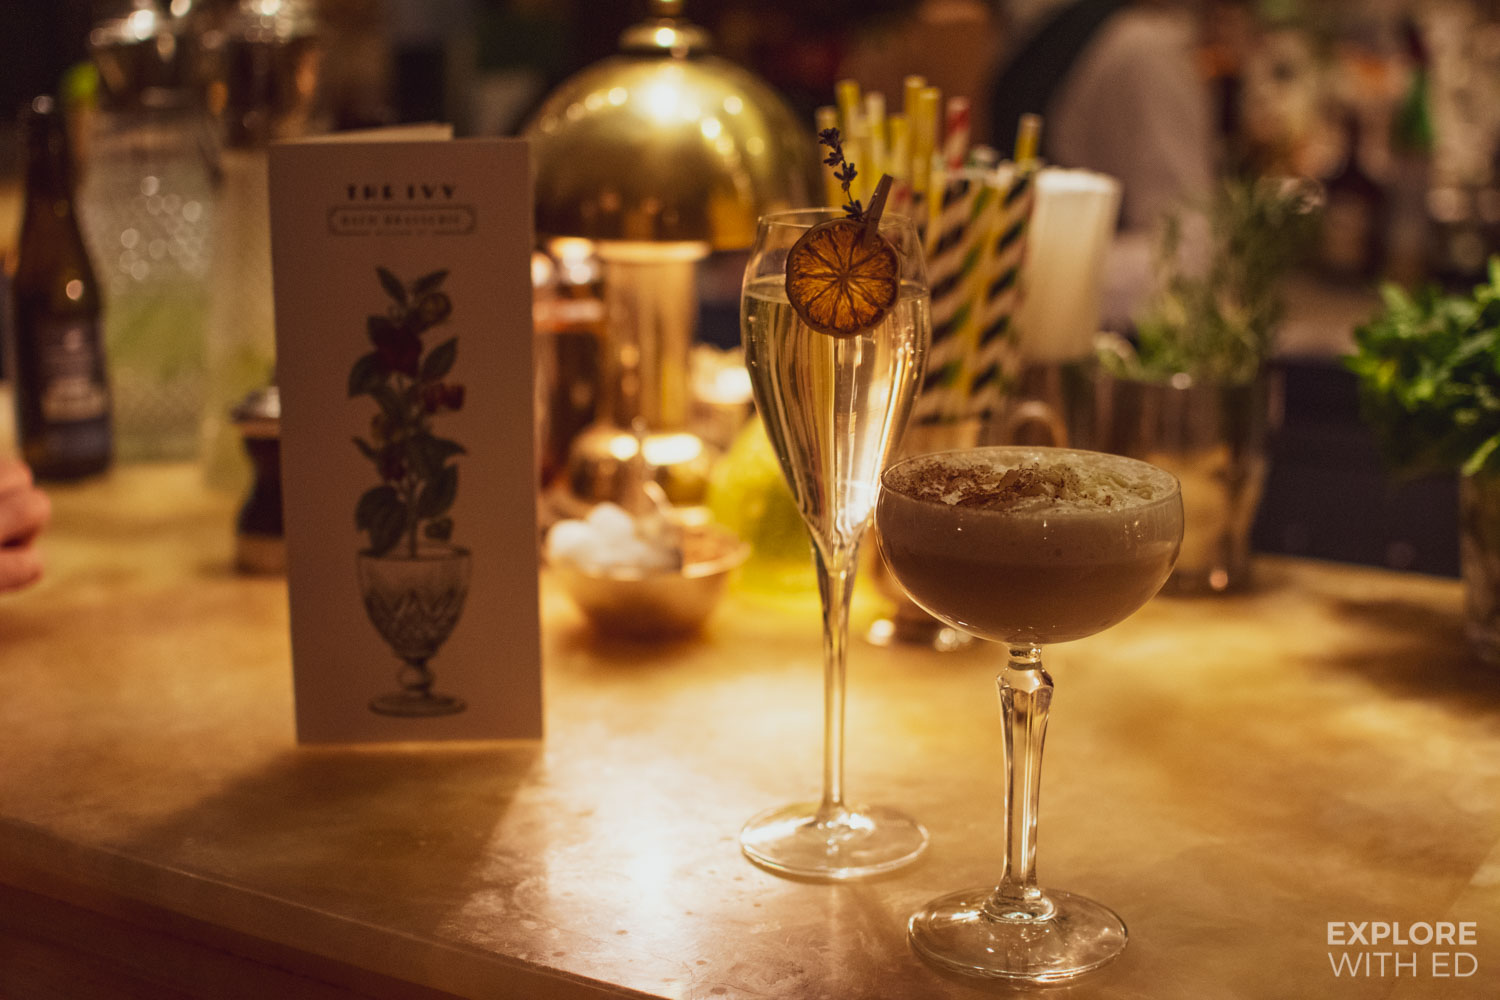 Merry Martini and Ginger Fizz cocktails at The Ivy Bath Brasserie